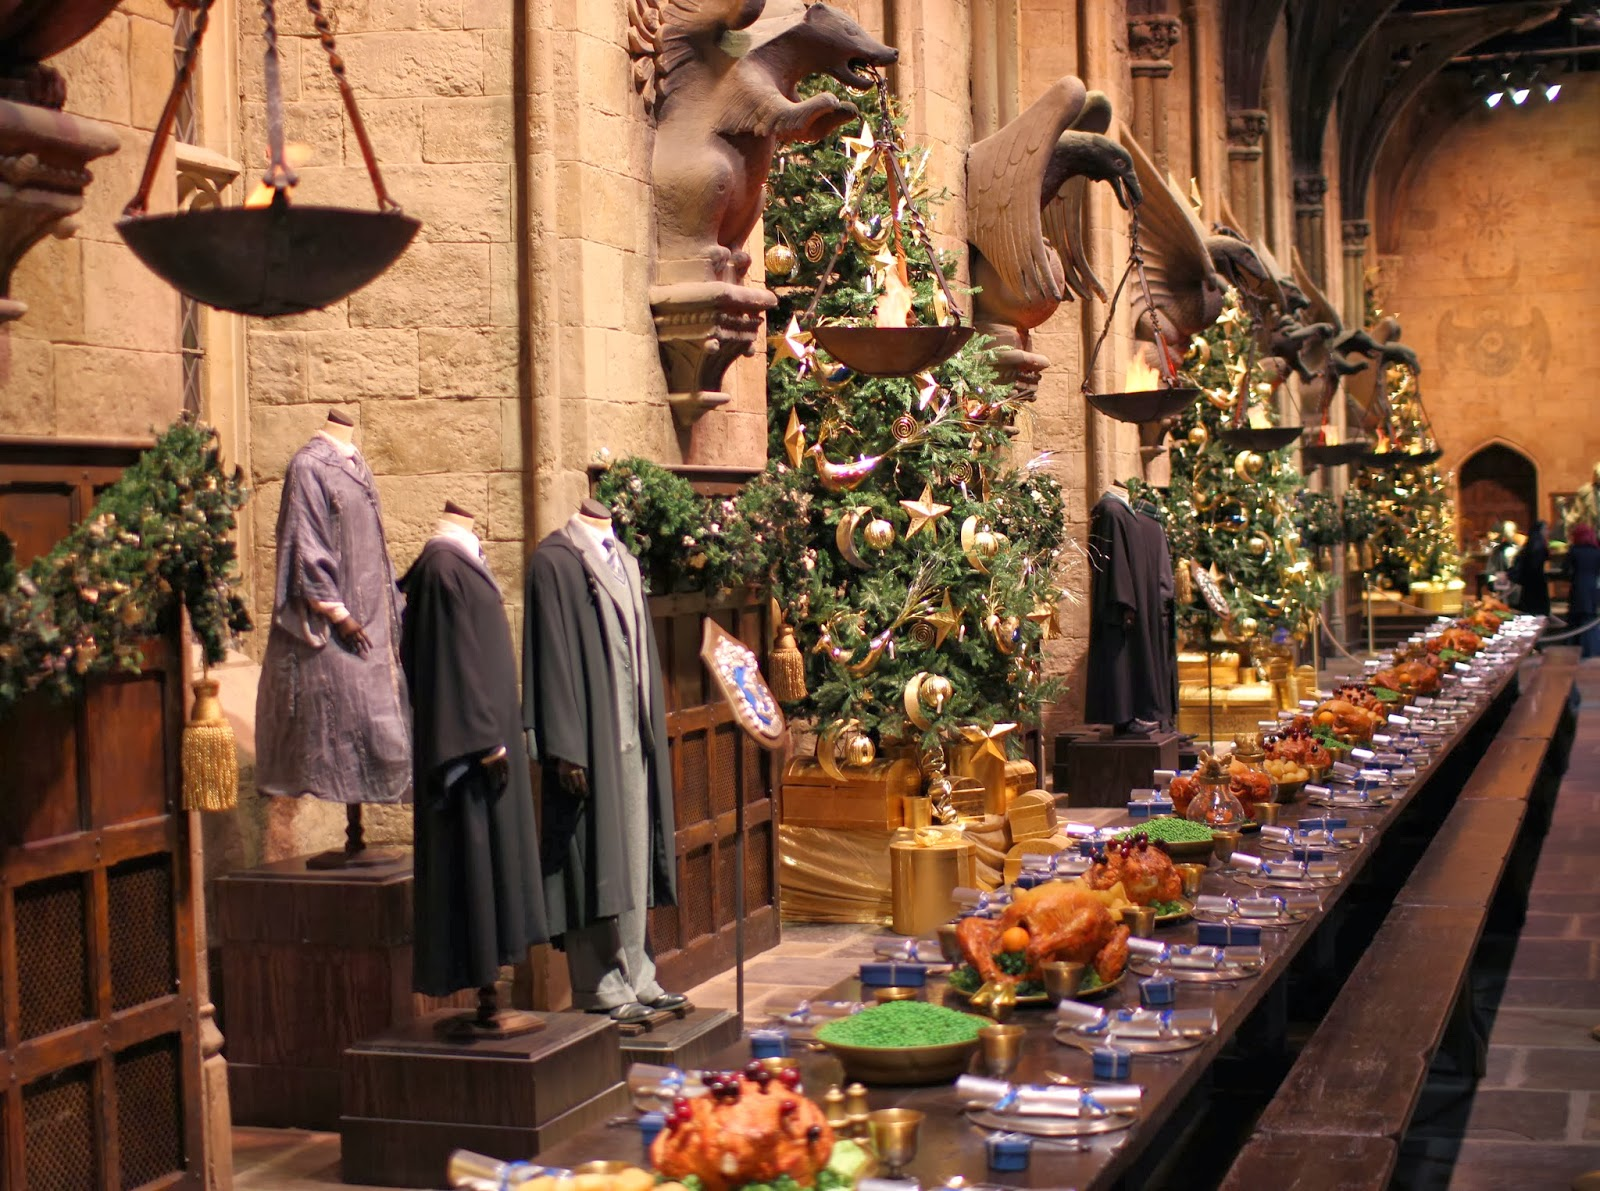 13 College Dining Halls That Look Exactly Like Hogwarts